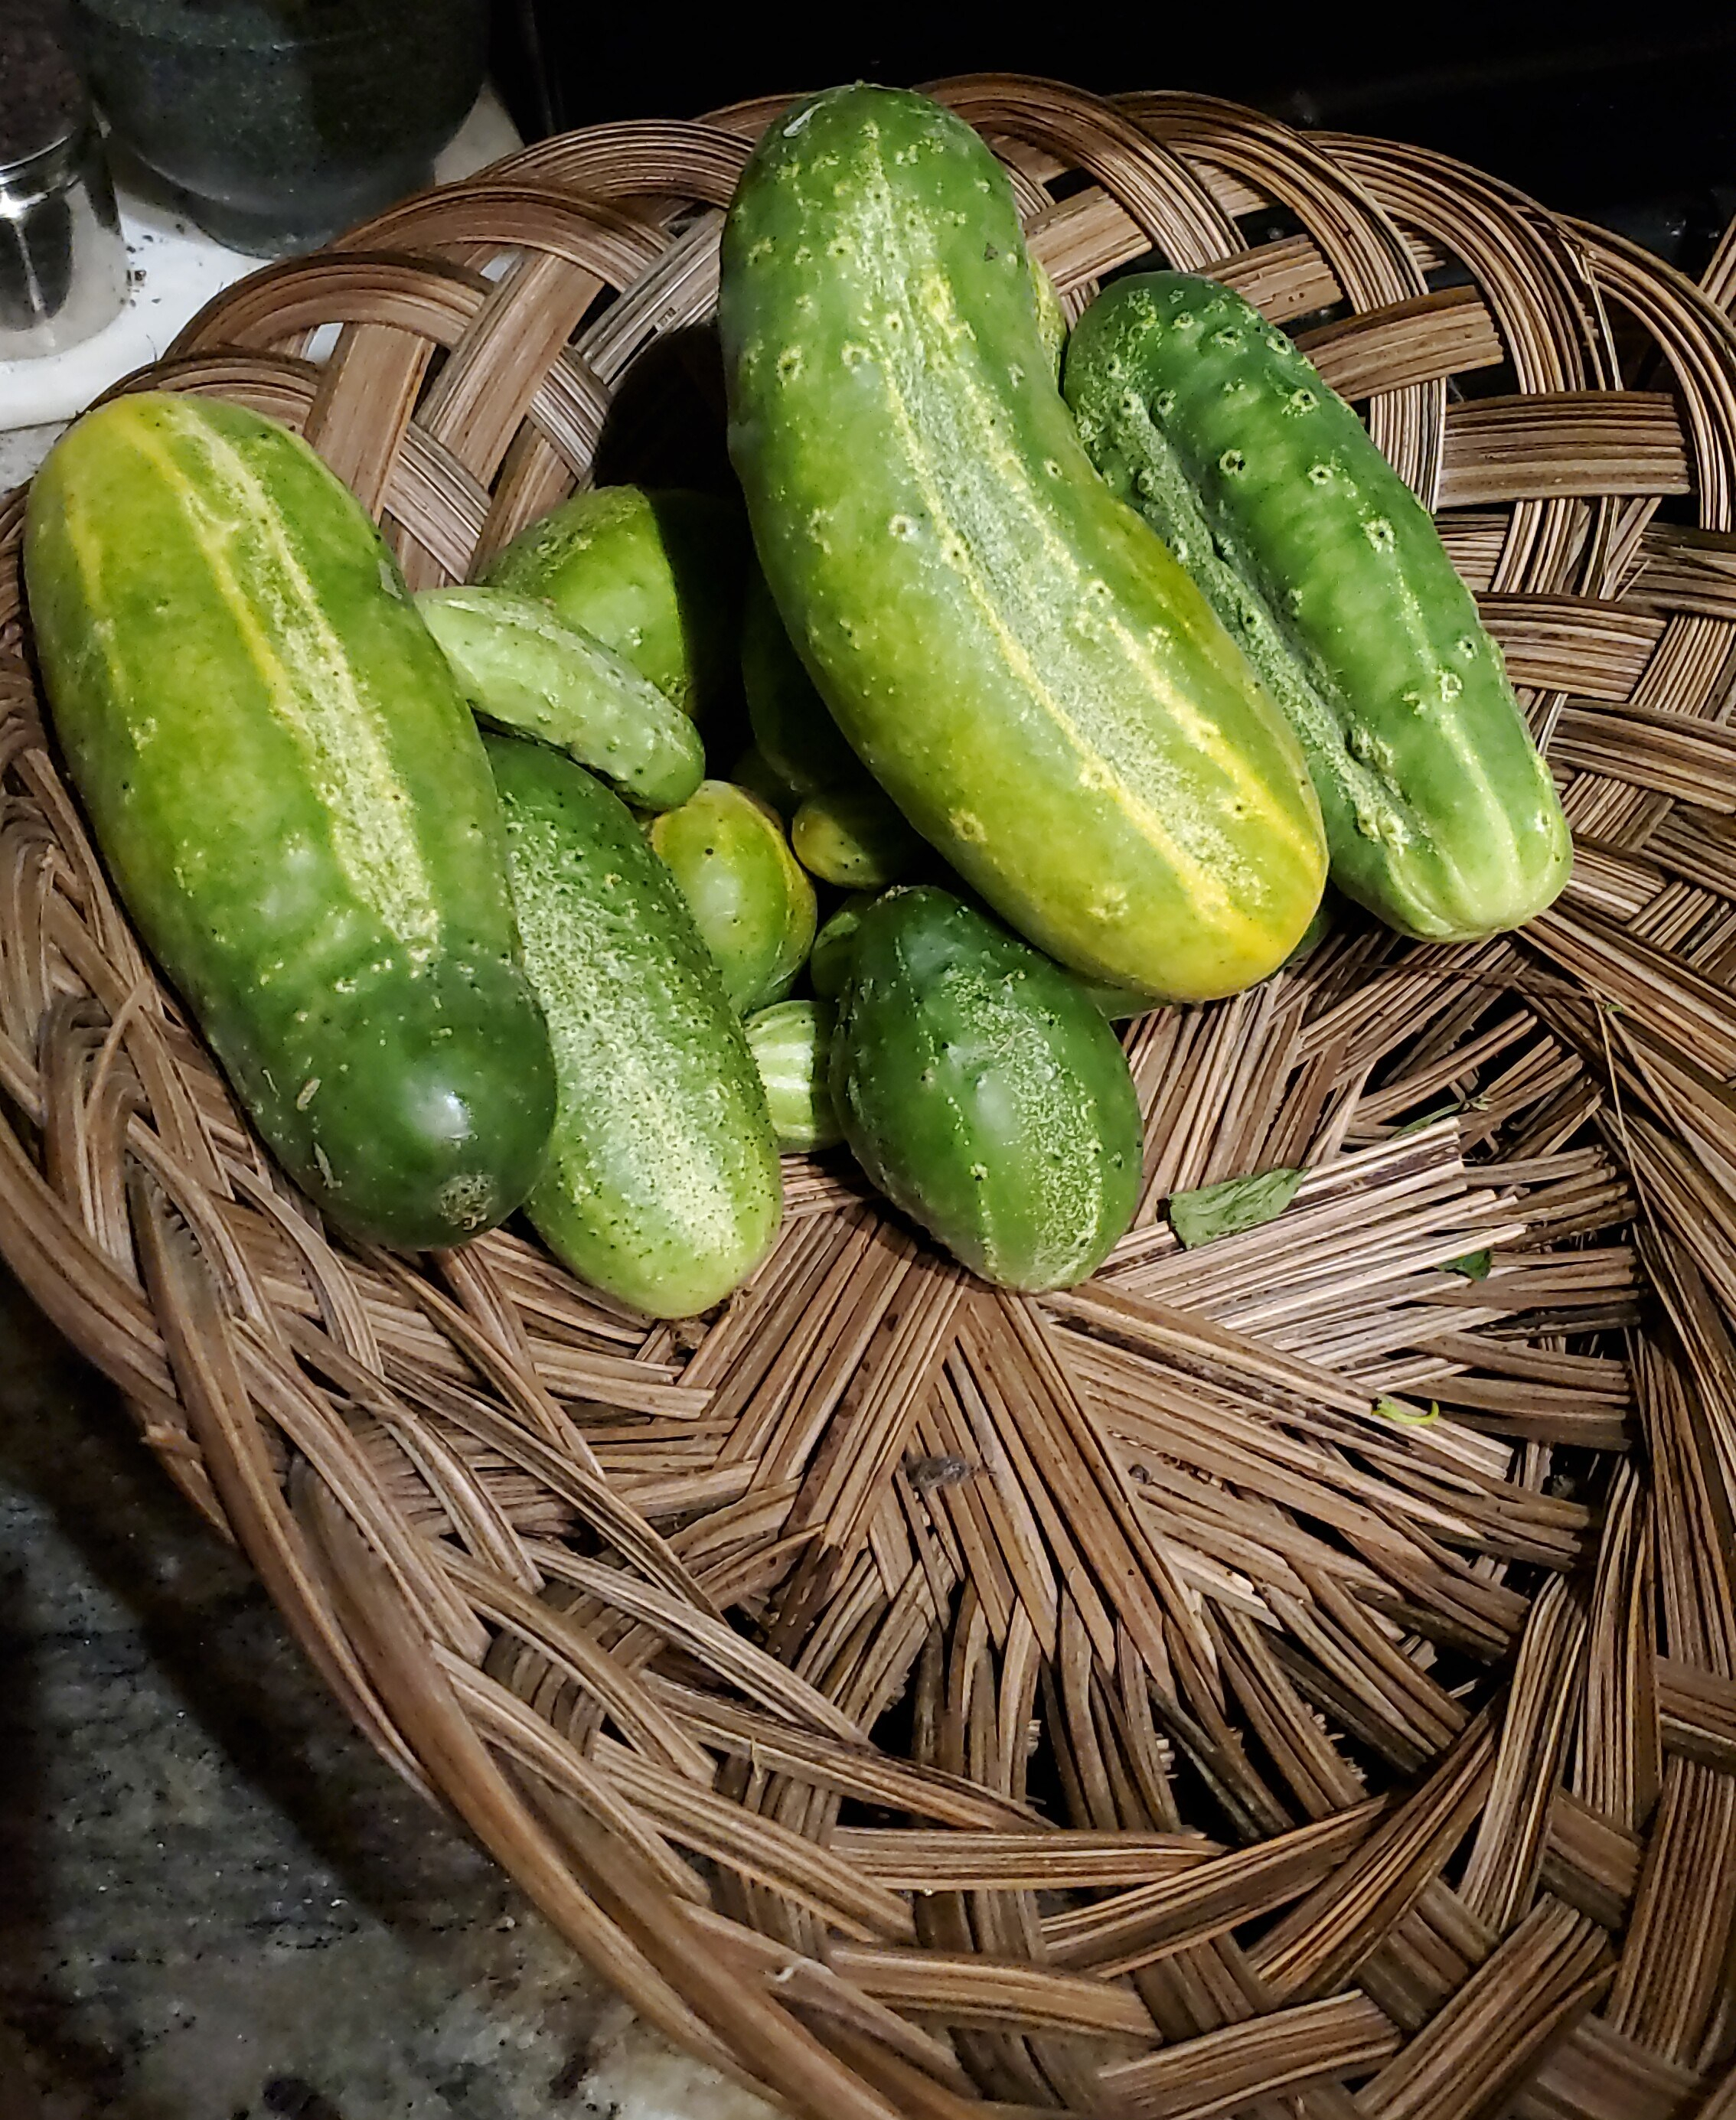 Basket with many different sized cucumbers in it